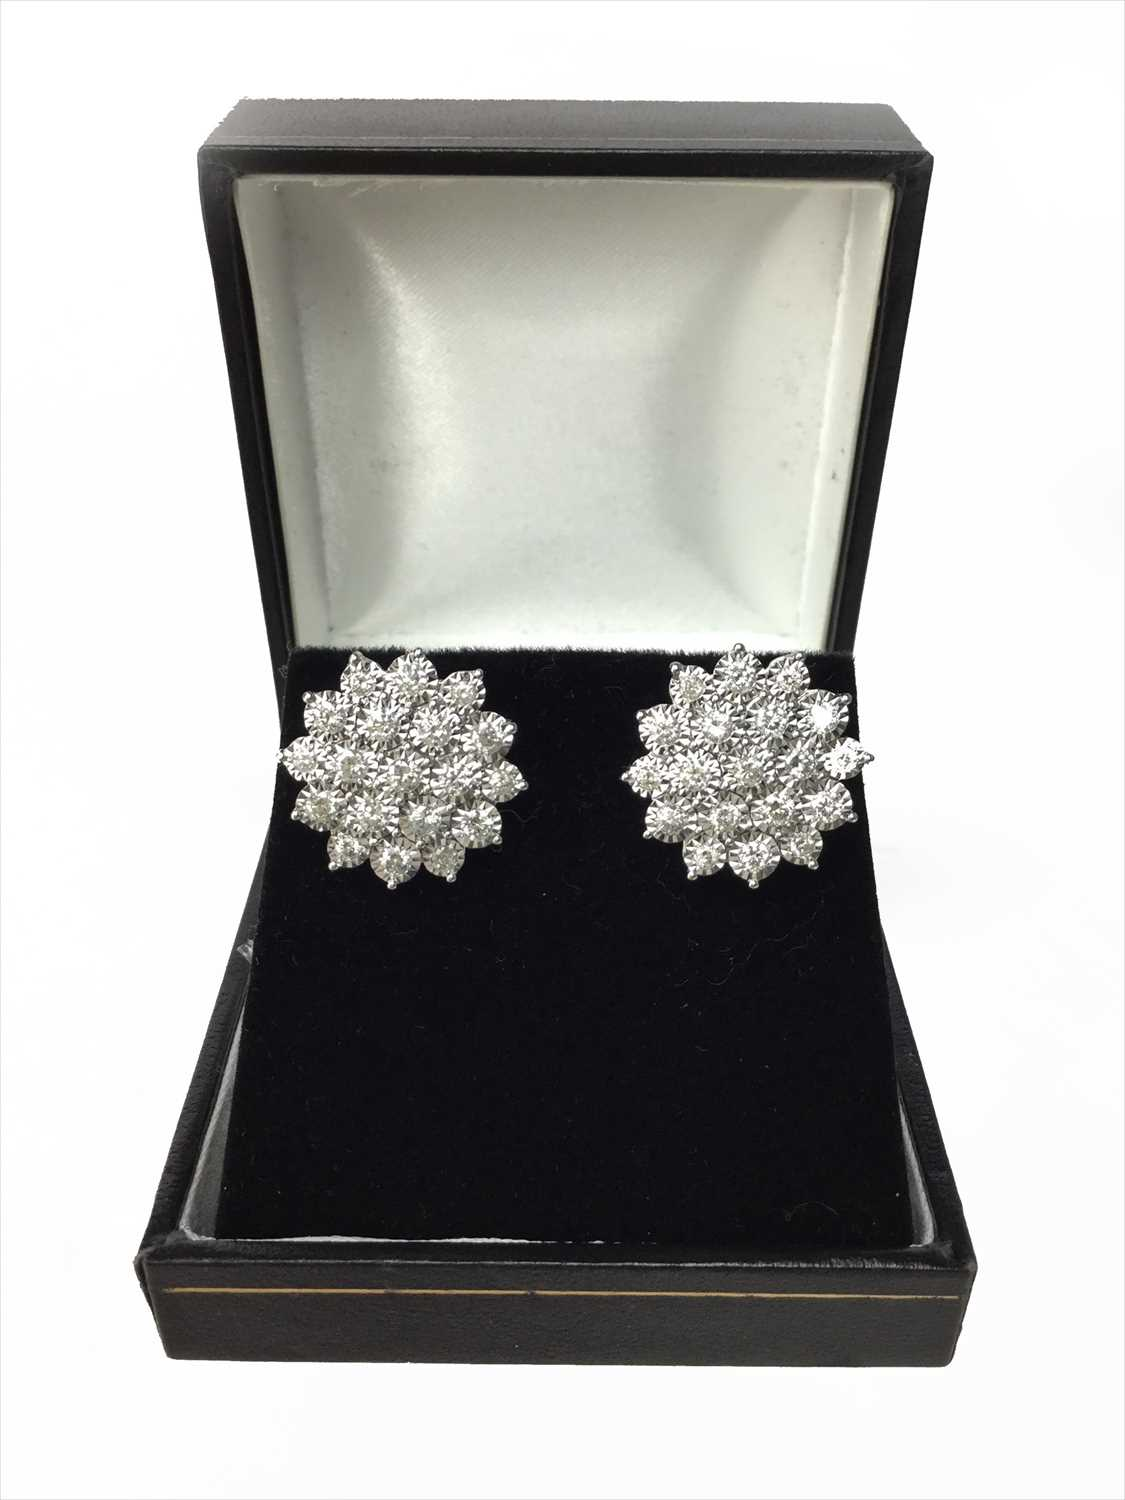 Lot 318-A PAIR OF DIAMOND CLUSTER EARRINGS